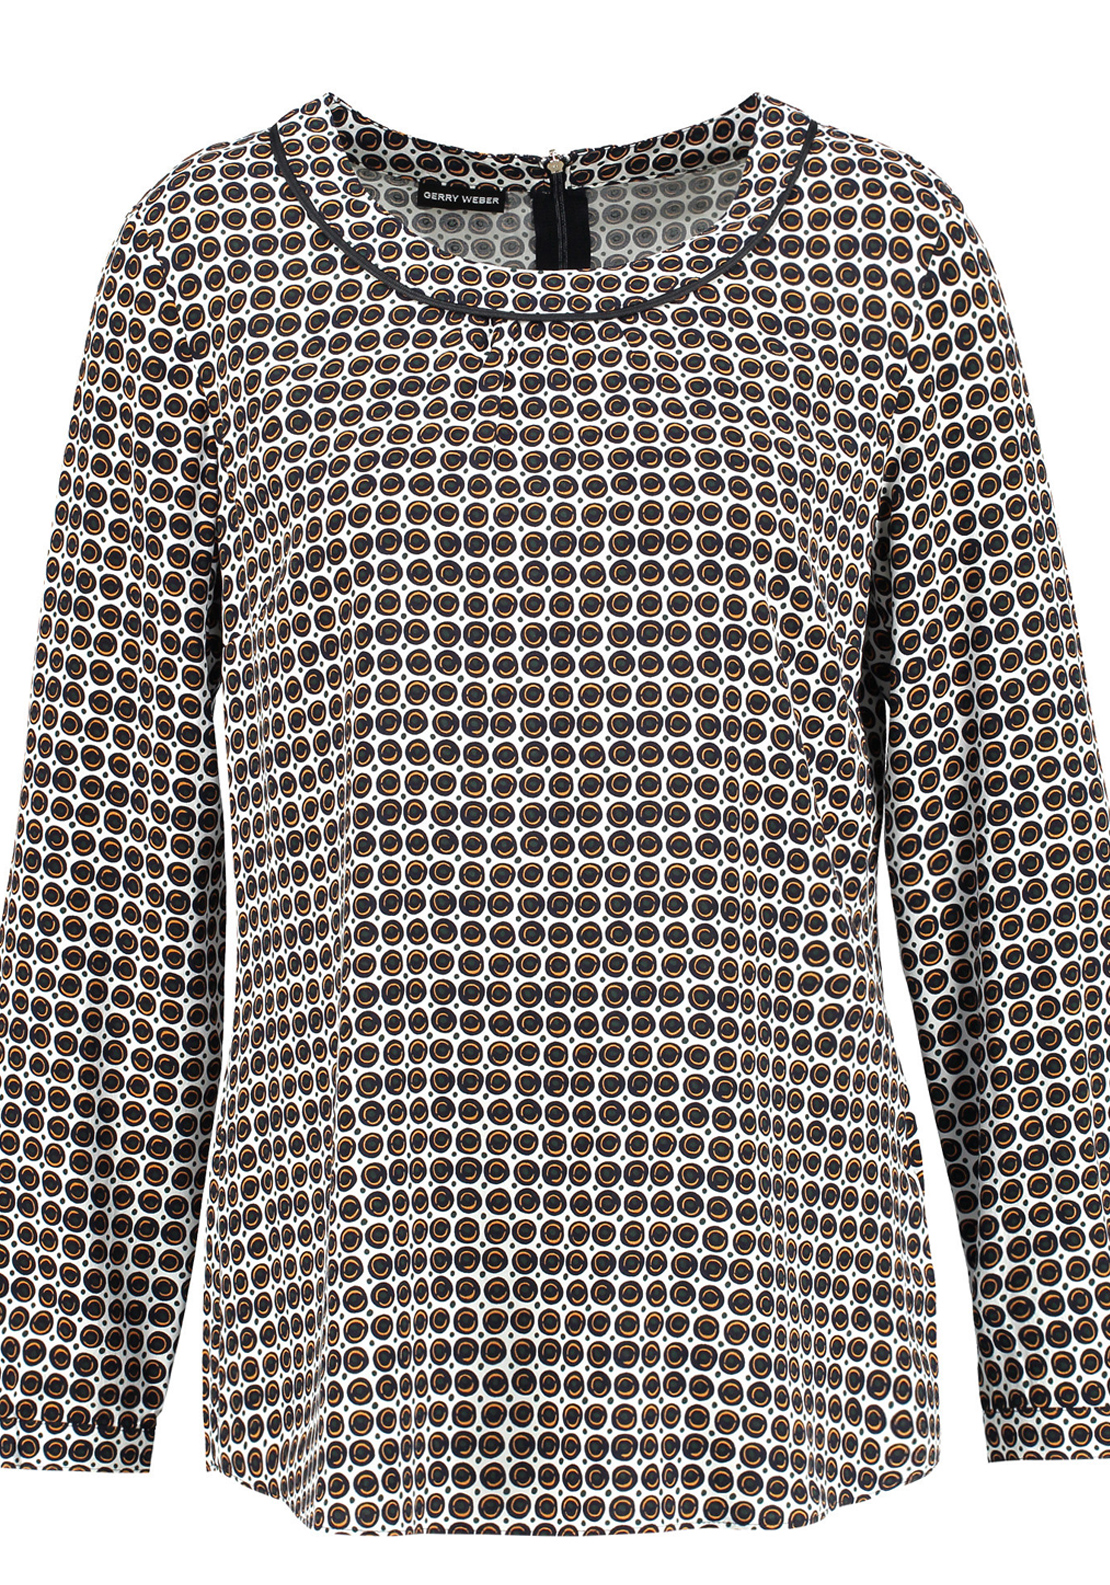 Gerry Weber Geometric Circle Print Long Sleeve Blouse, White Multi